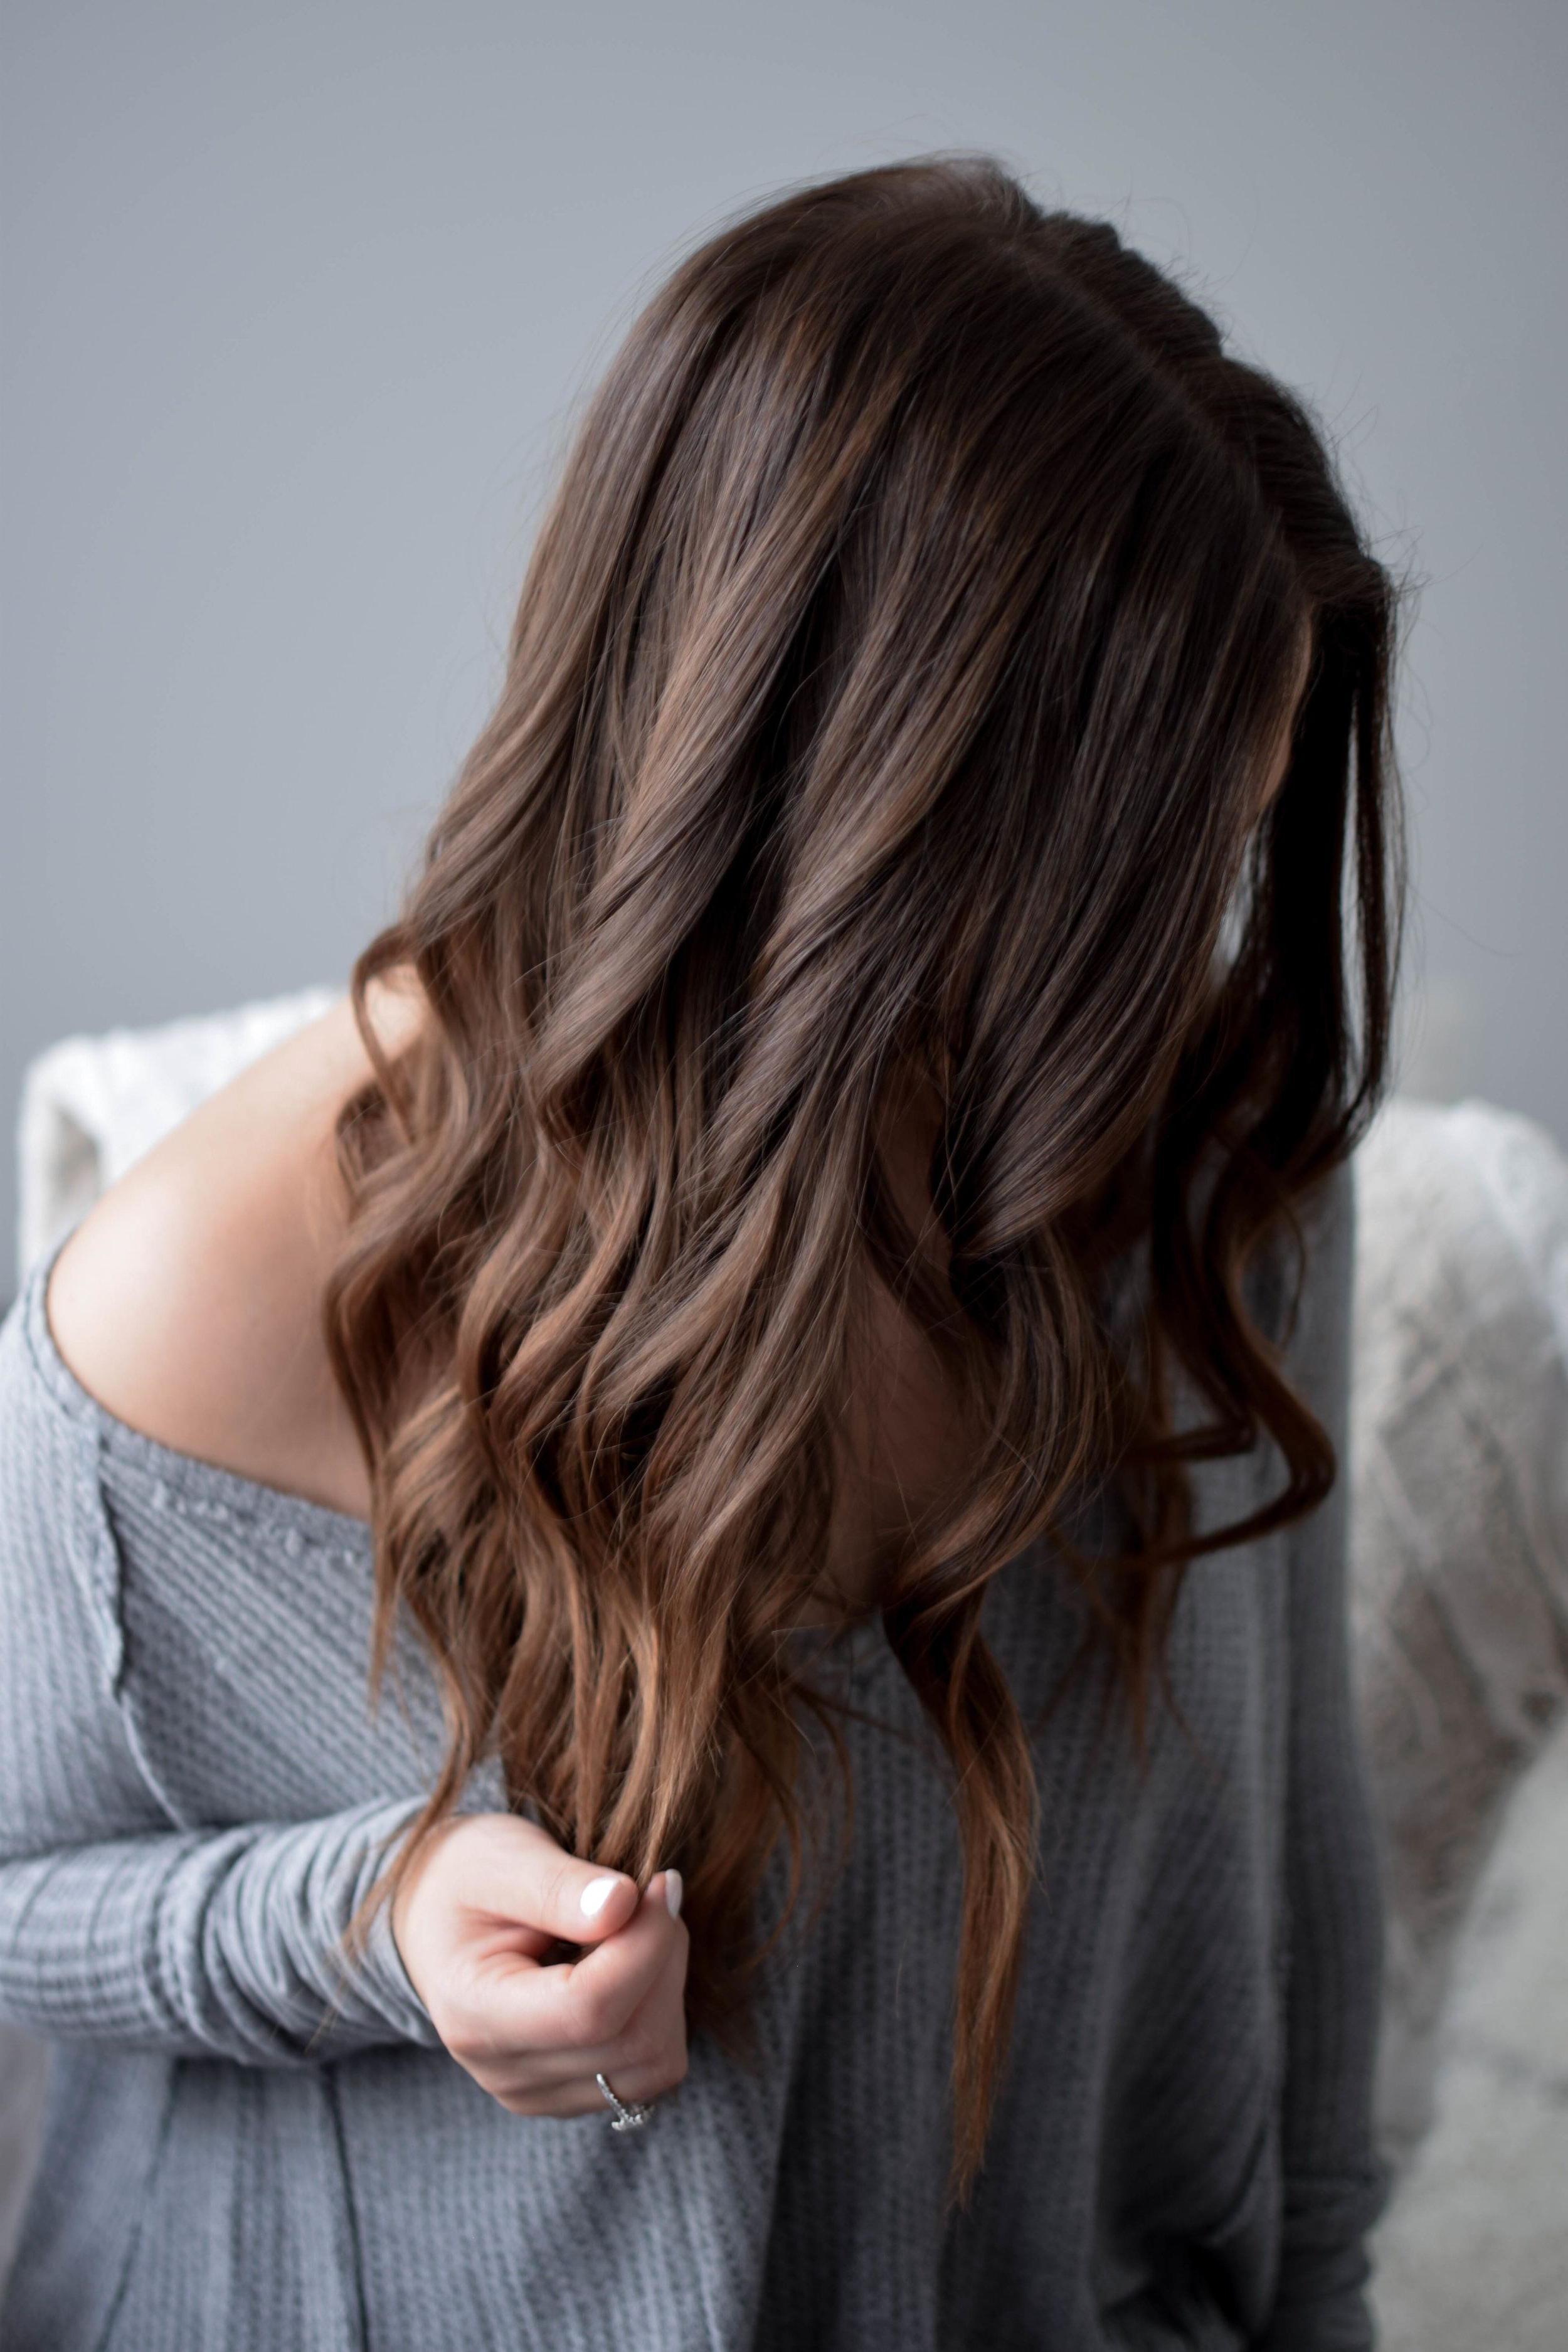 Loose Waves Hair Pertaining To Most Current Everyday Loose Wavy Curls For Long Hairstyles (Gallery 3 of 20)